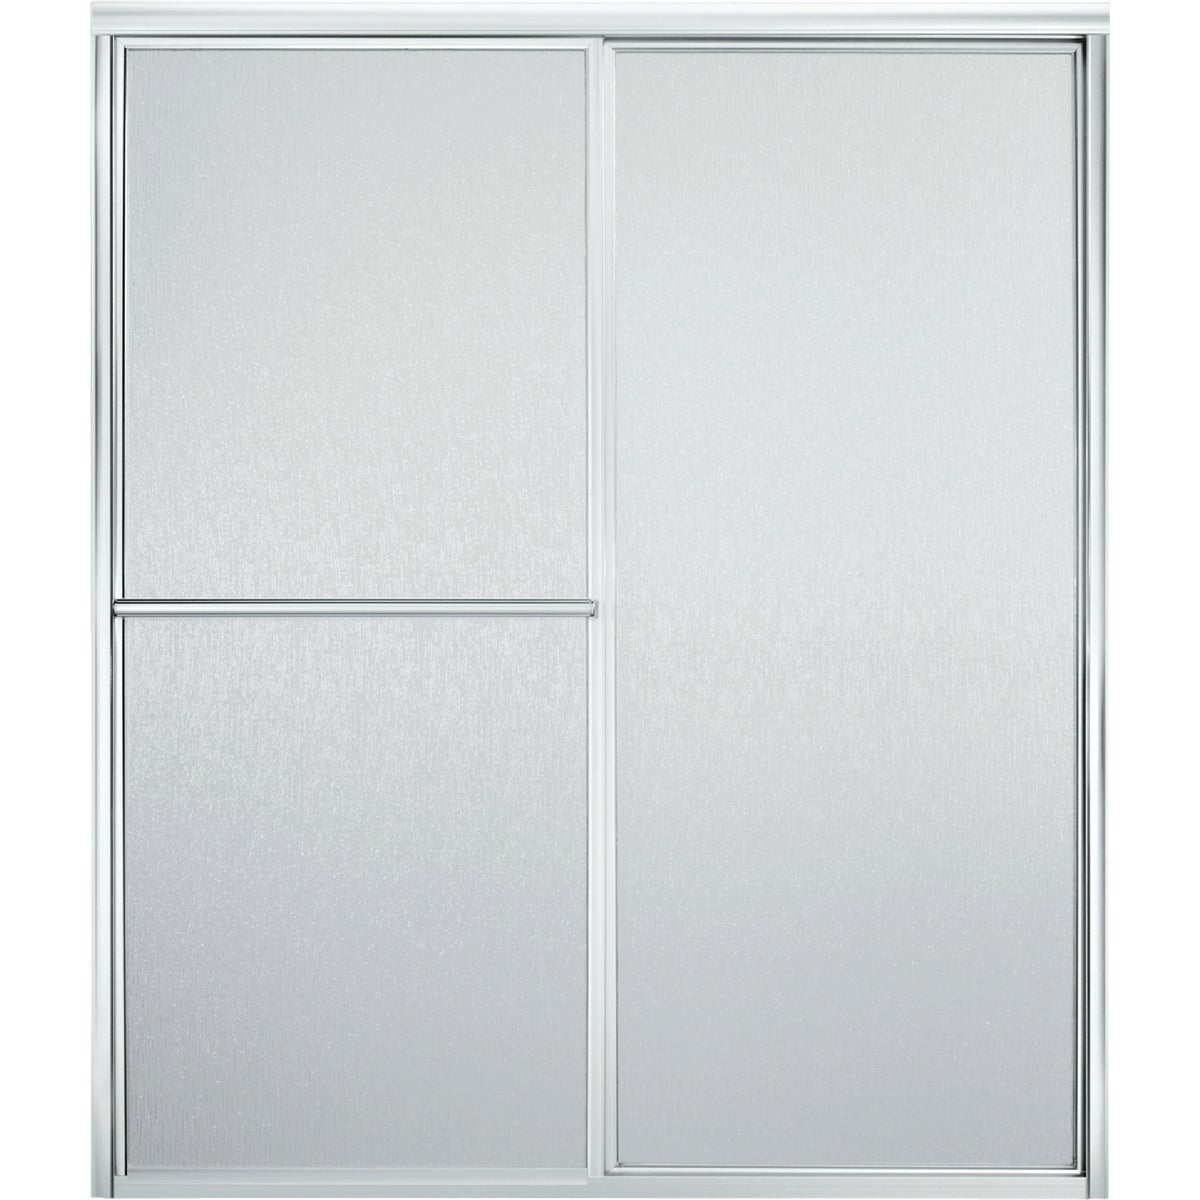 54-3/8-59-3/8 RAIN SH DR - SP5975-59S-GO6 by Sterling Doors